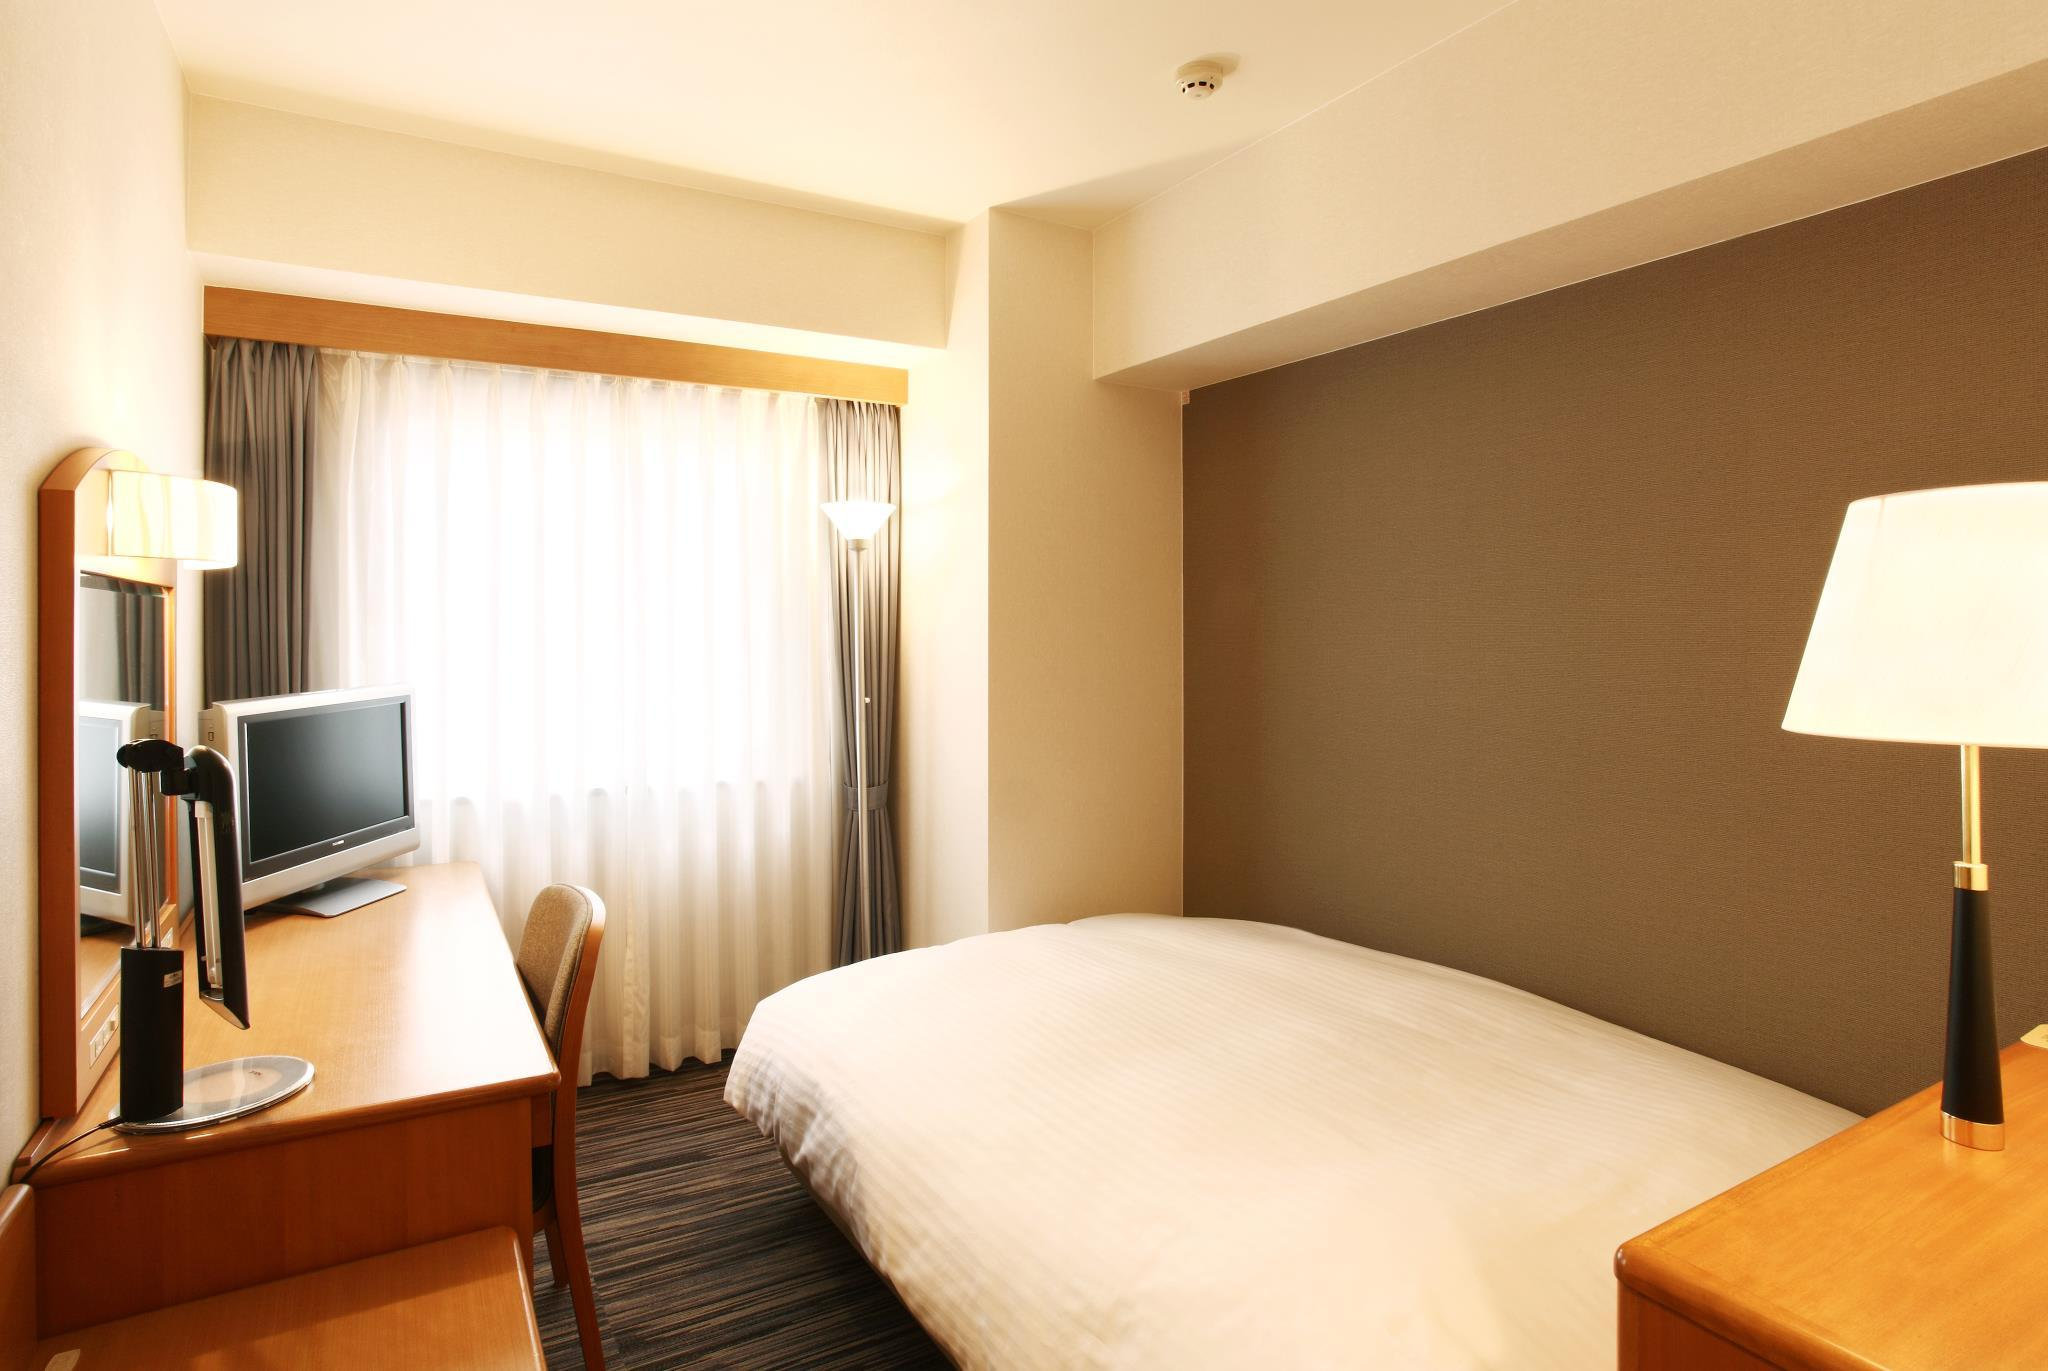 버짓 스몰 더블룸 (금연) (Budget Small Double Room - Non-Smoking)